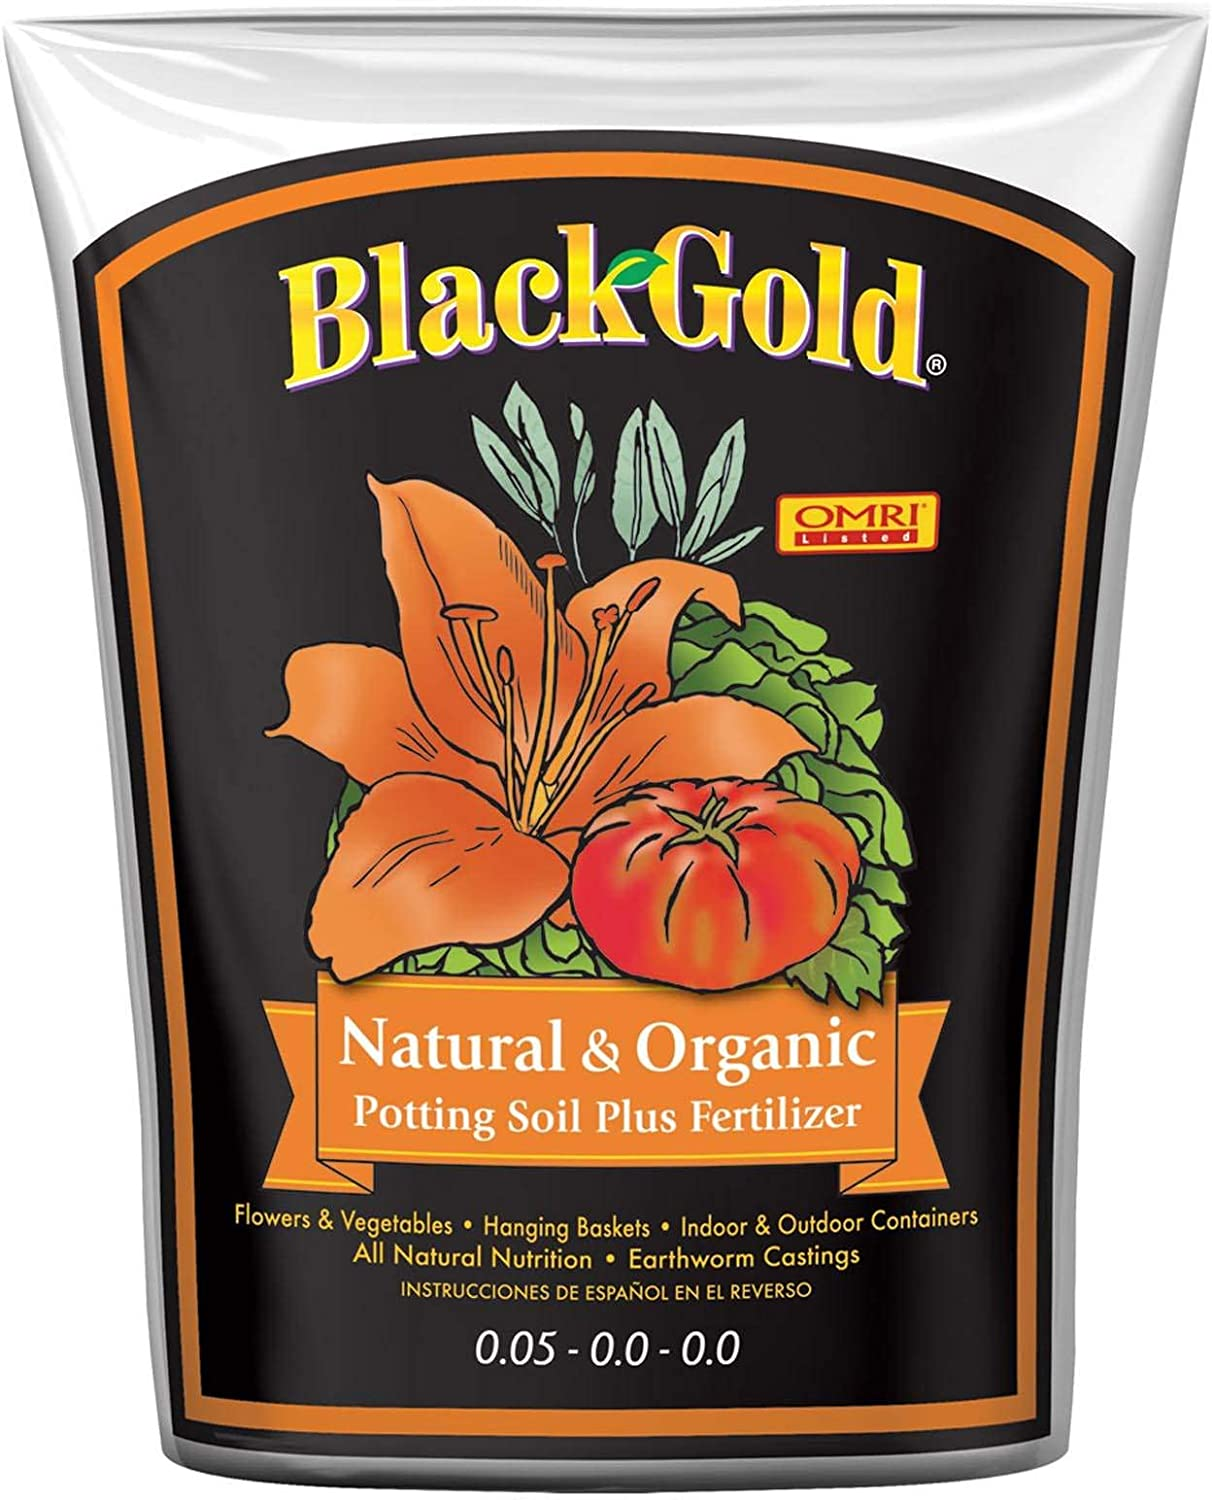 Sun Gro Black Gold Natural and Organic Soil